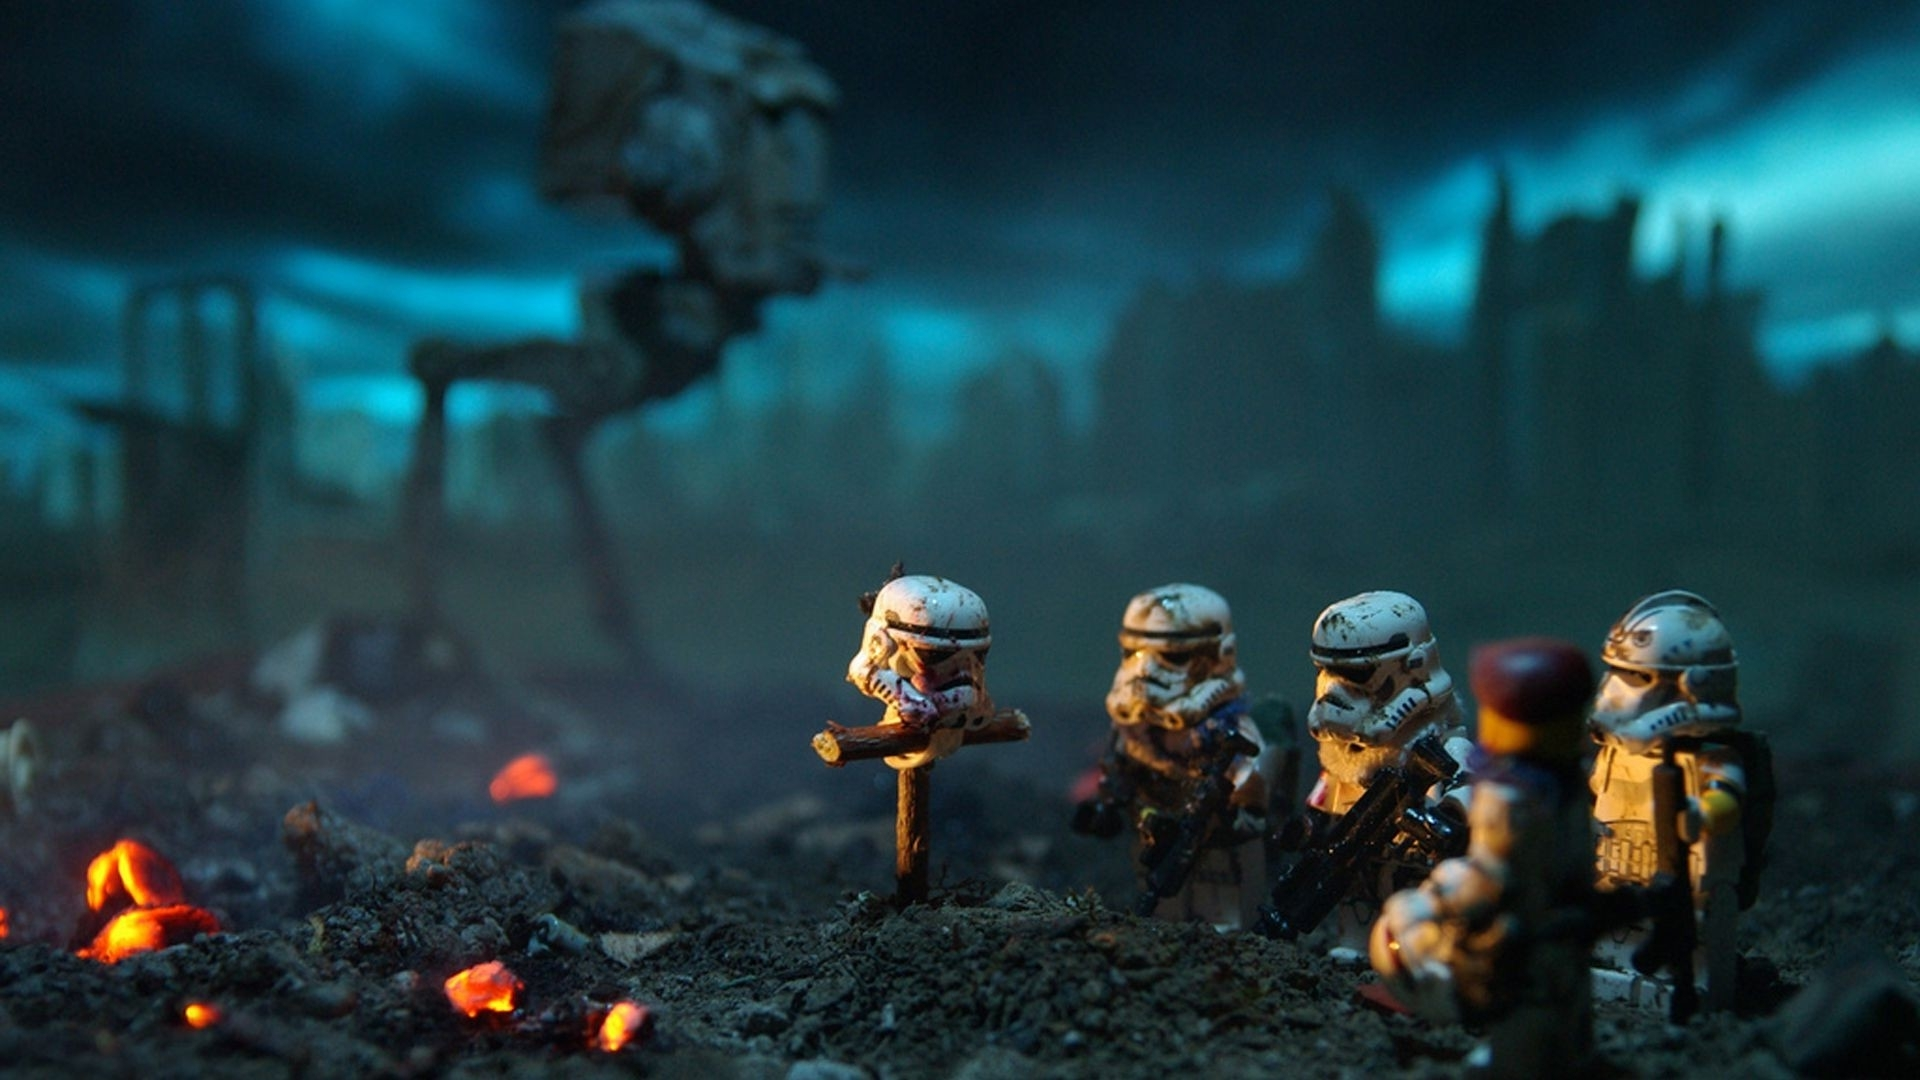 10 New Lego Star Wars Wallpapers Full Hd 1080p For Pc Background